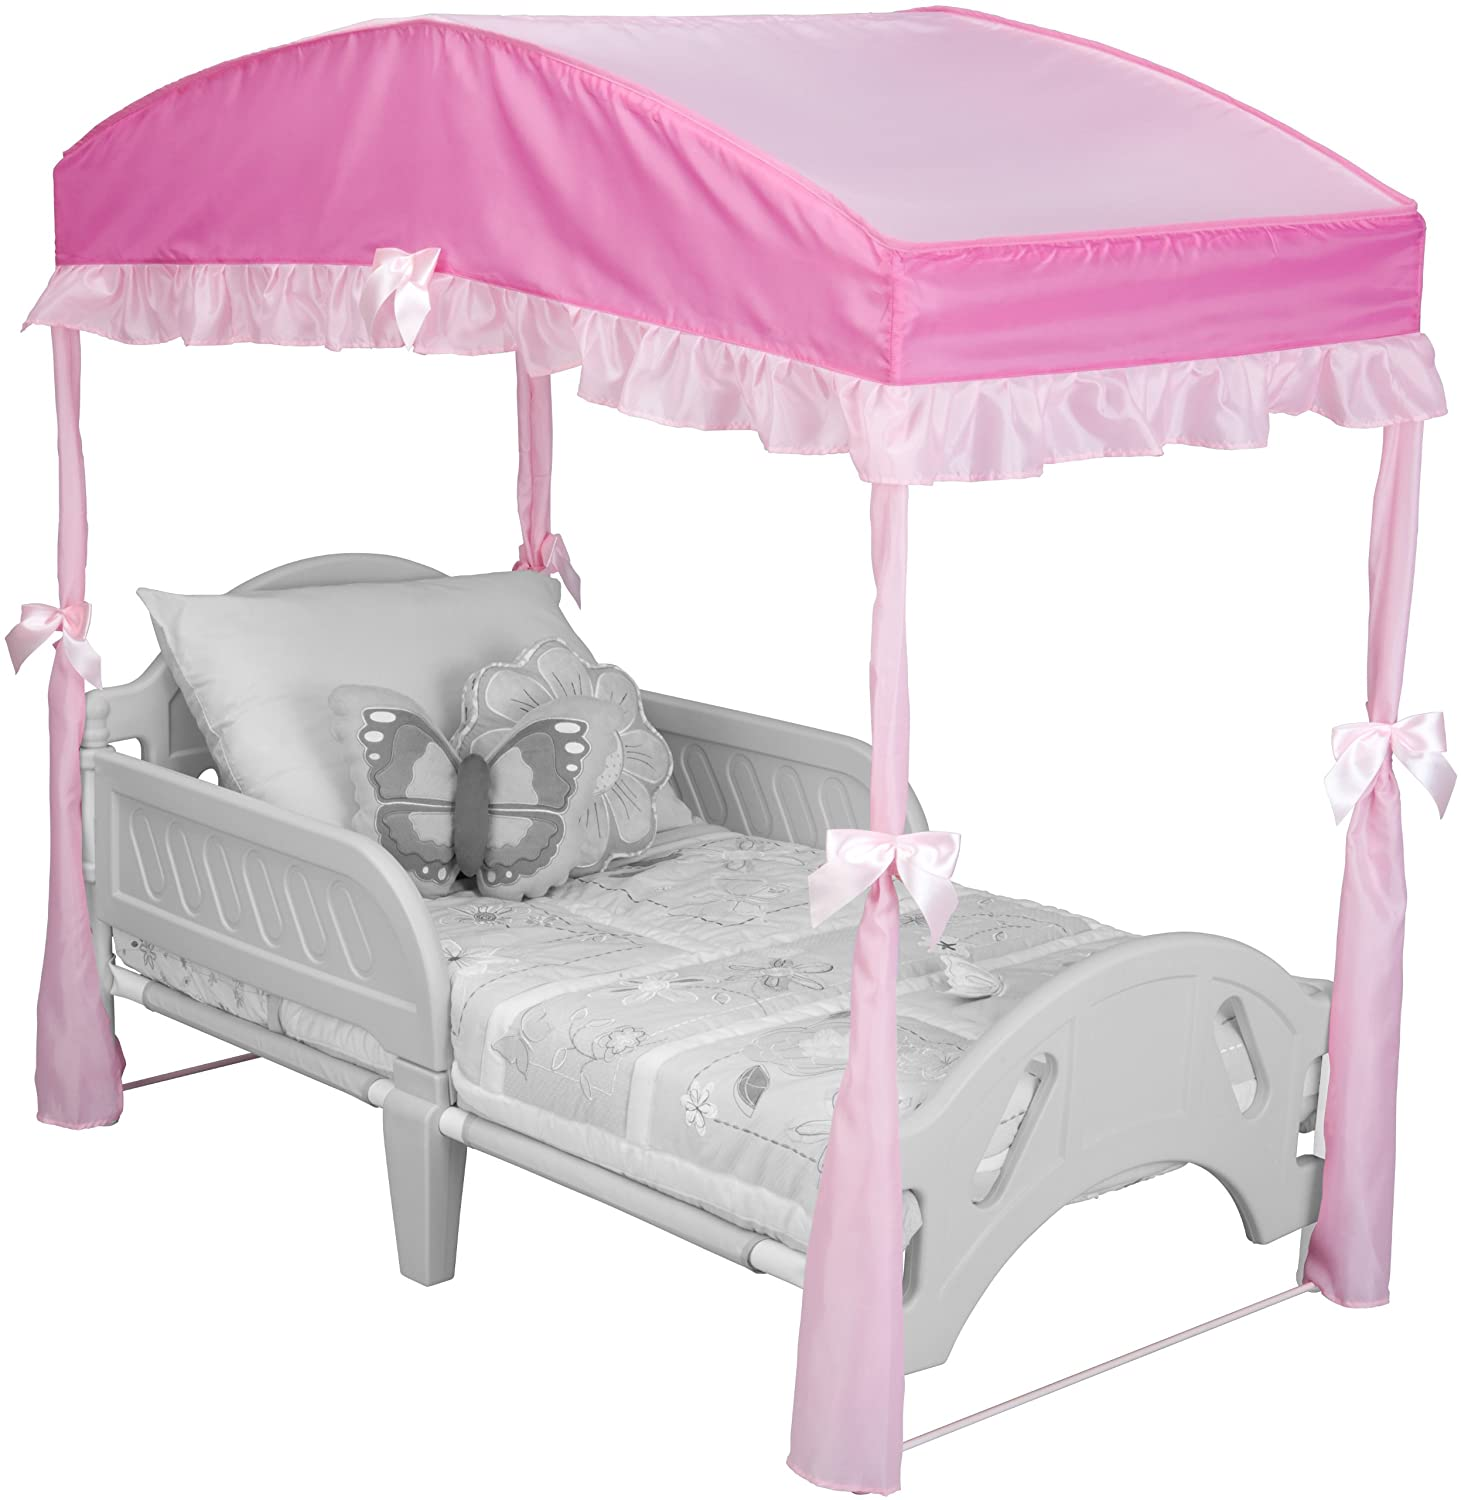 Delta Children Canopy Toddler Bed Disney Princess Review 2